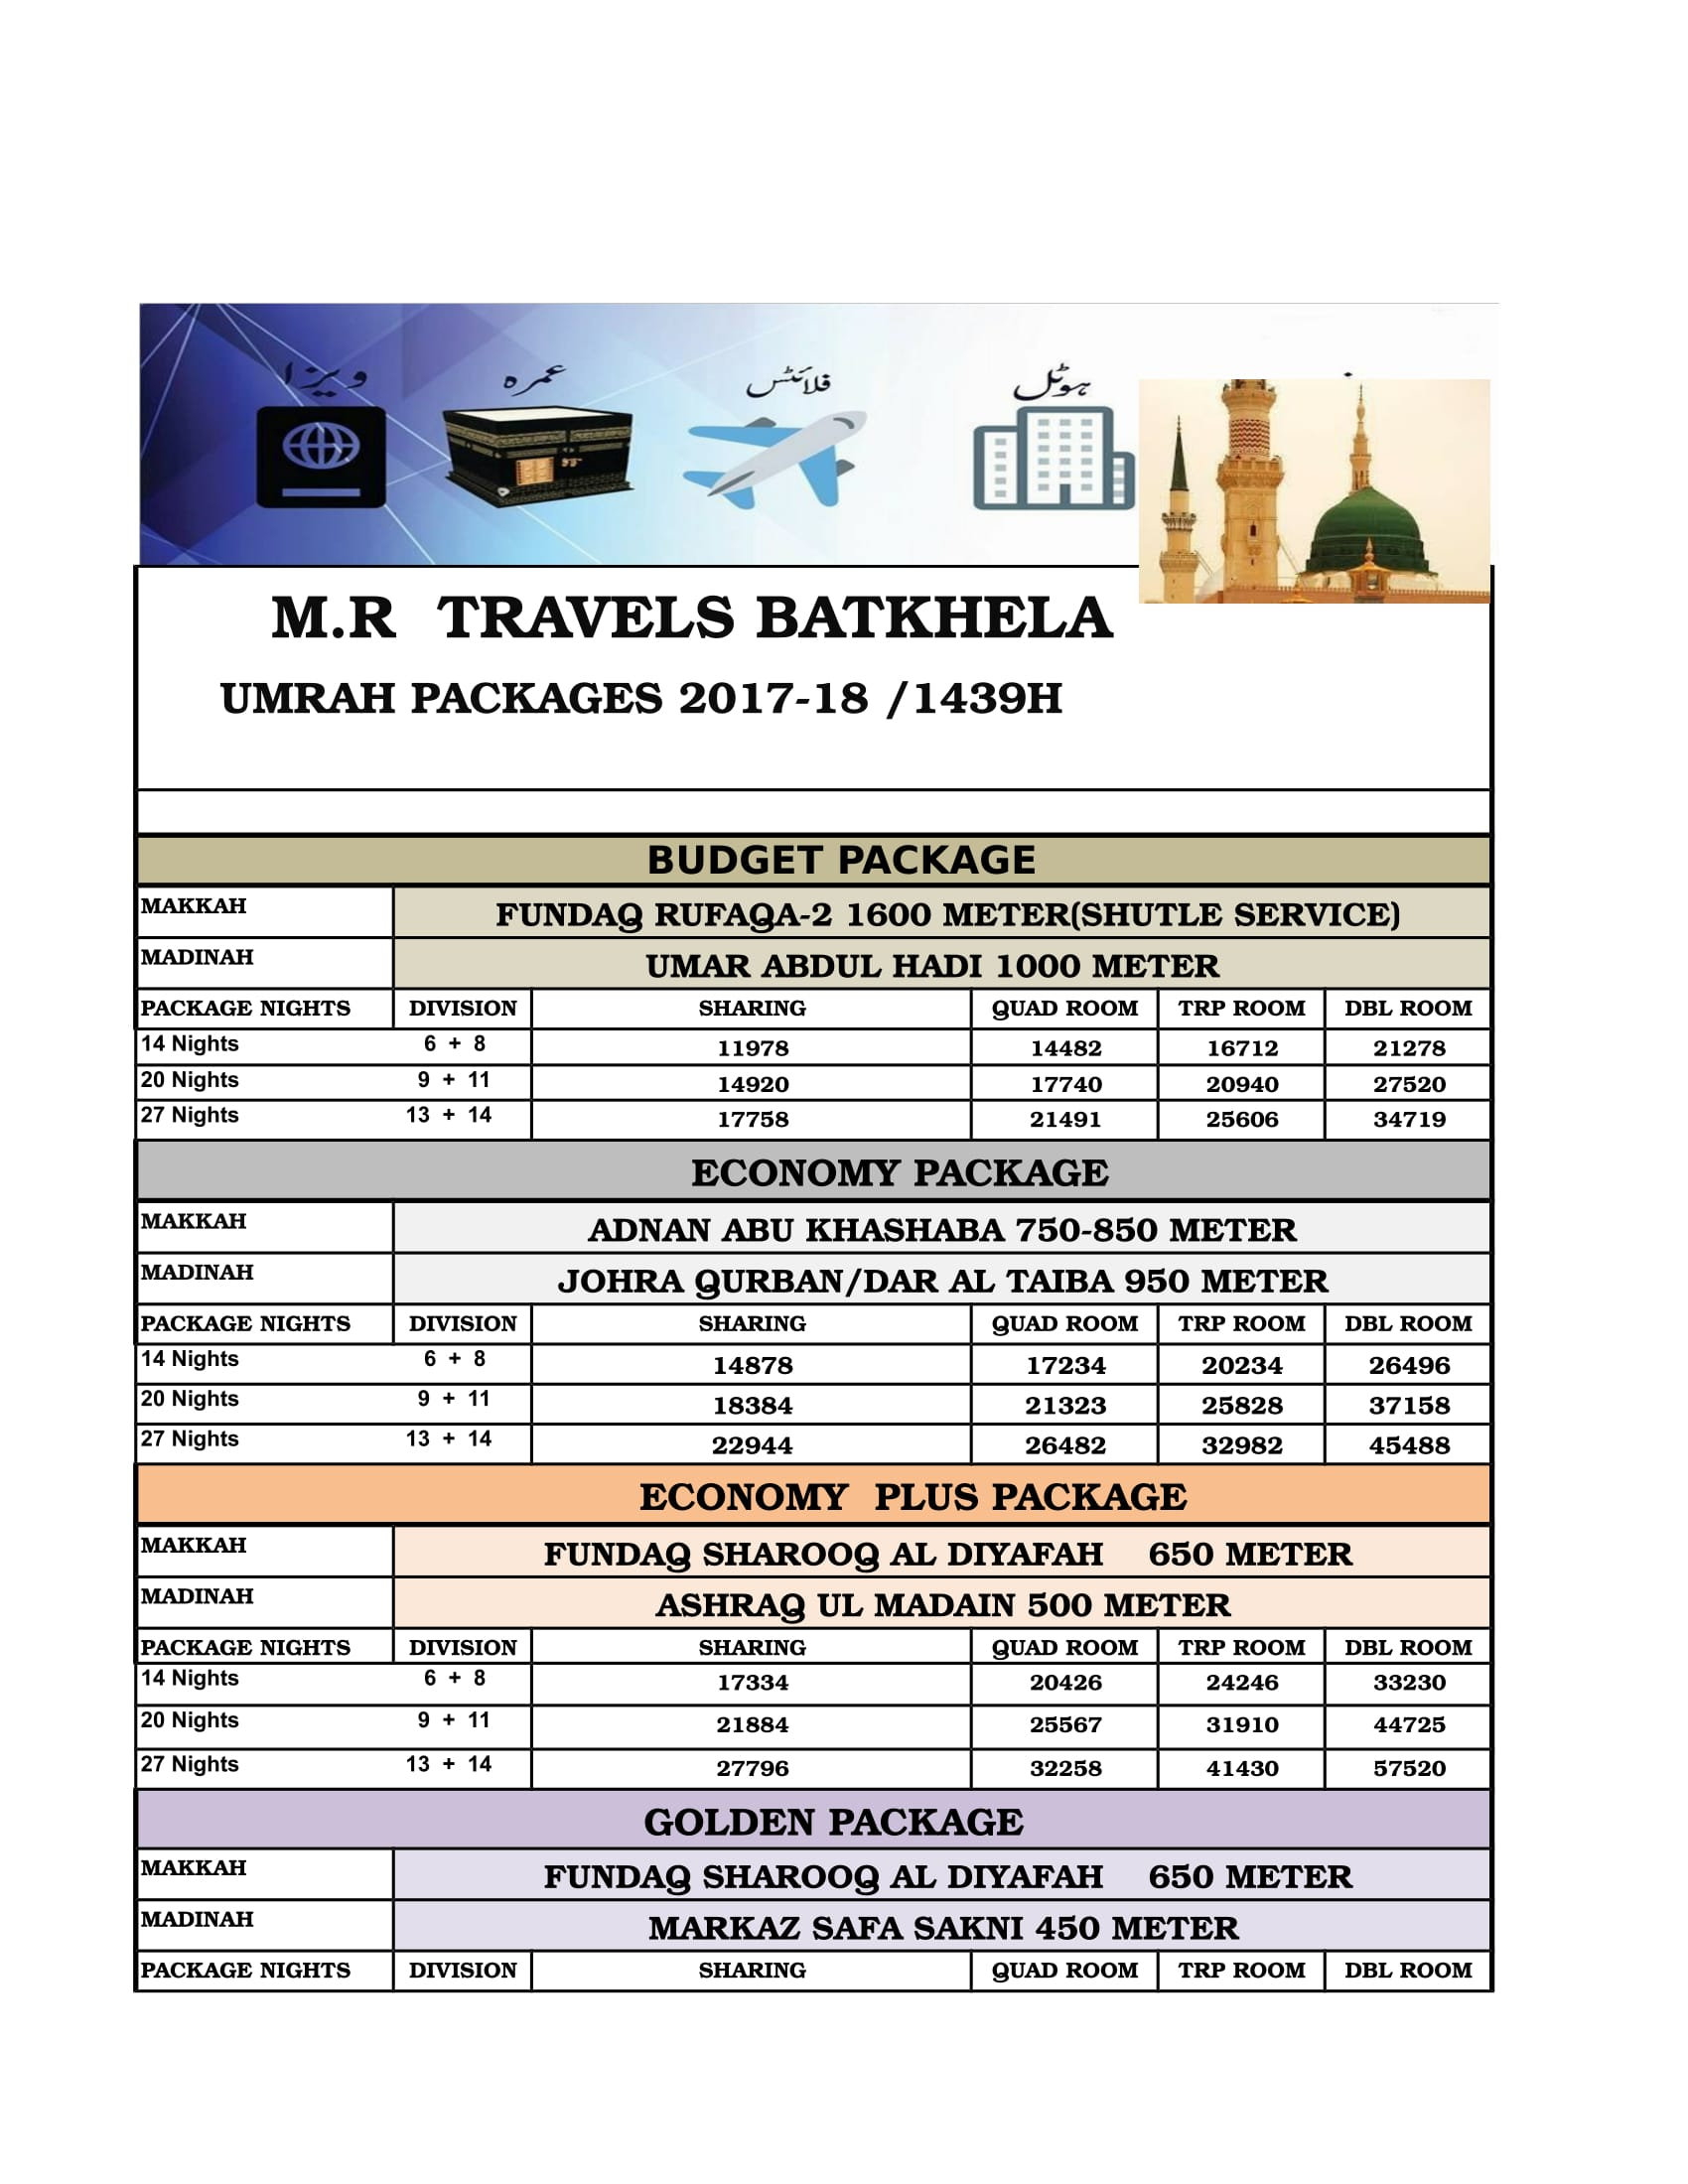 Cheapest umrah package 2018